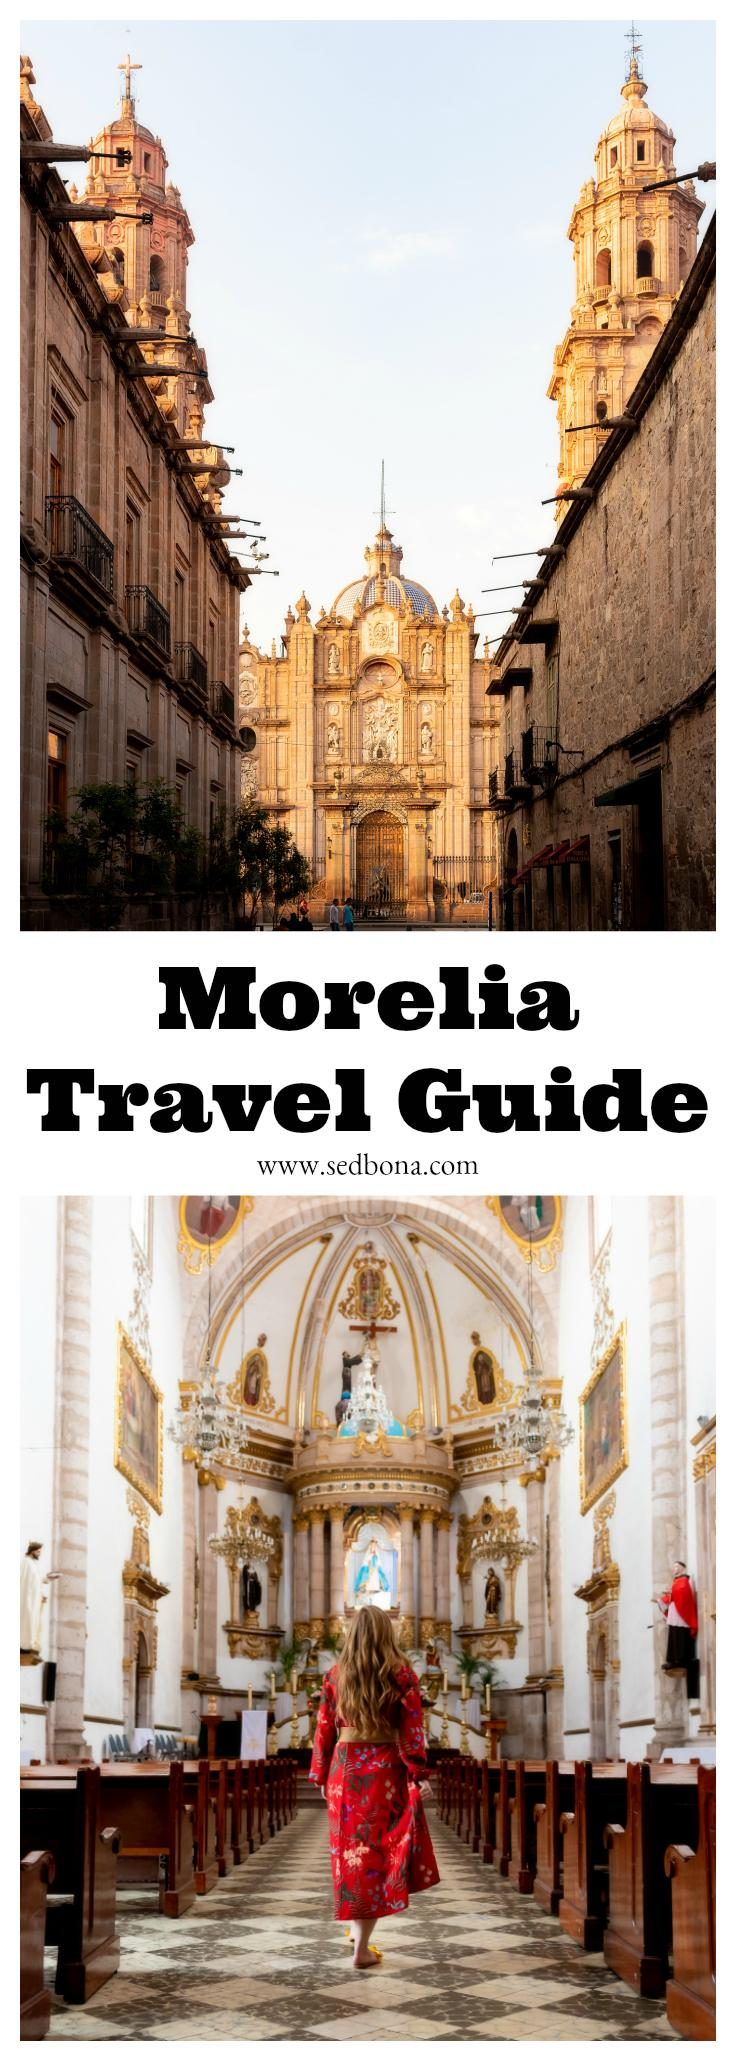 Morelia Travel Guide Sed Bona